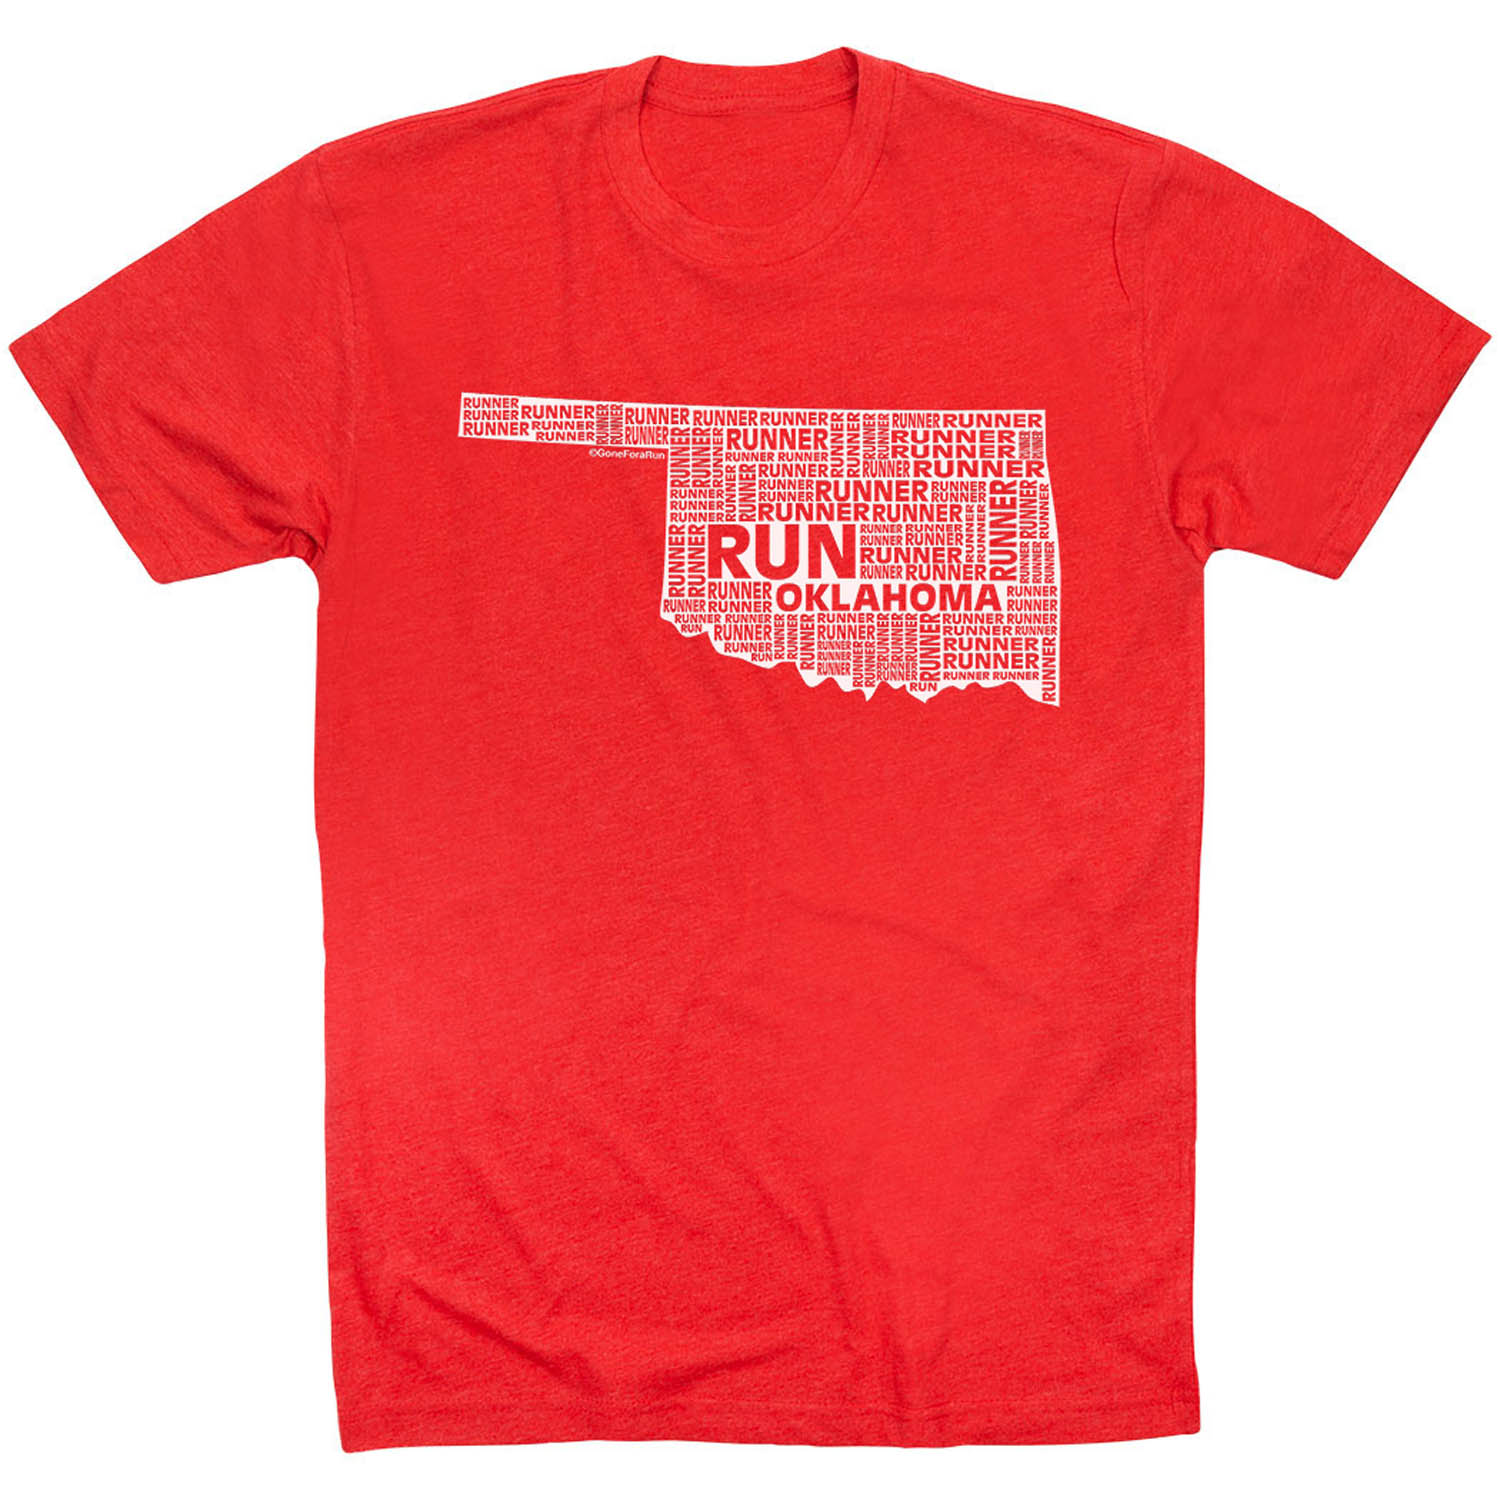 Running Short Sleeve T-Shirt - Oklahoma State Runner